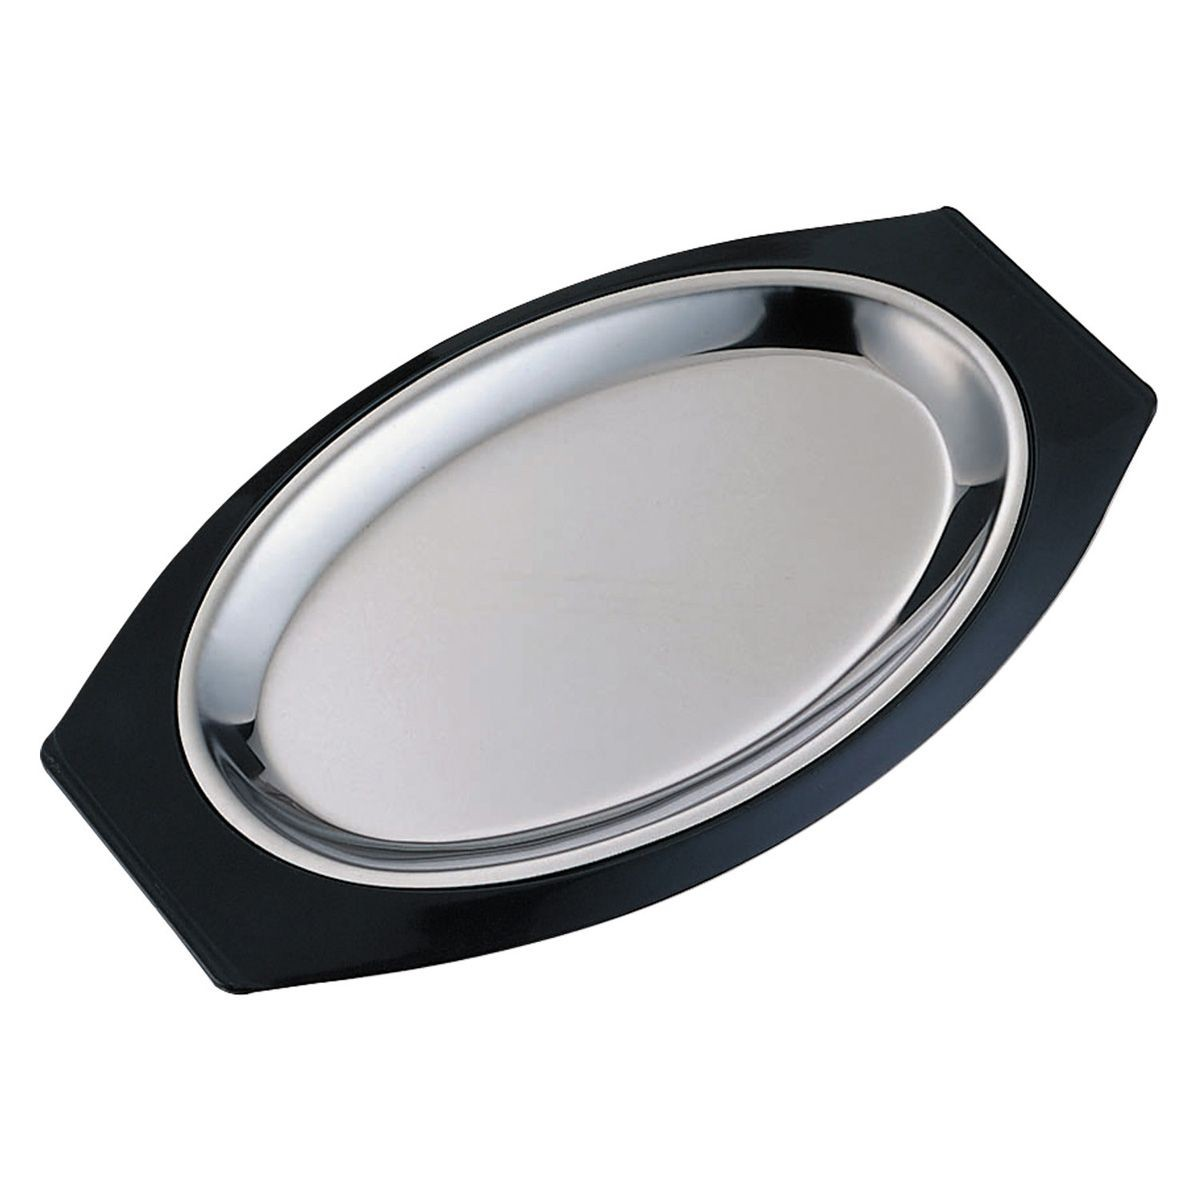 Service Ideas RO117BLC Thermo-Plate Oval Sizzle Platter Set